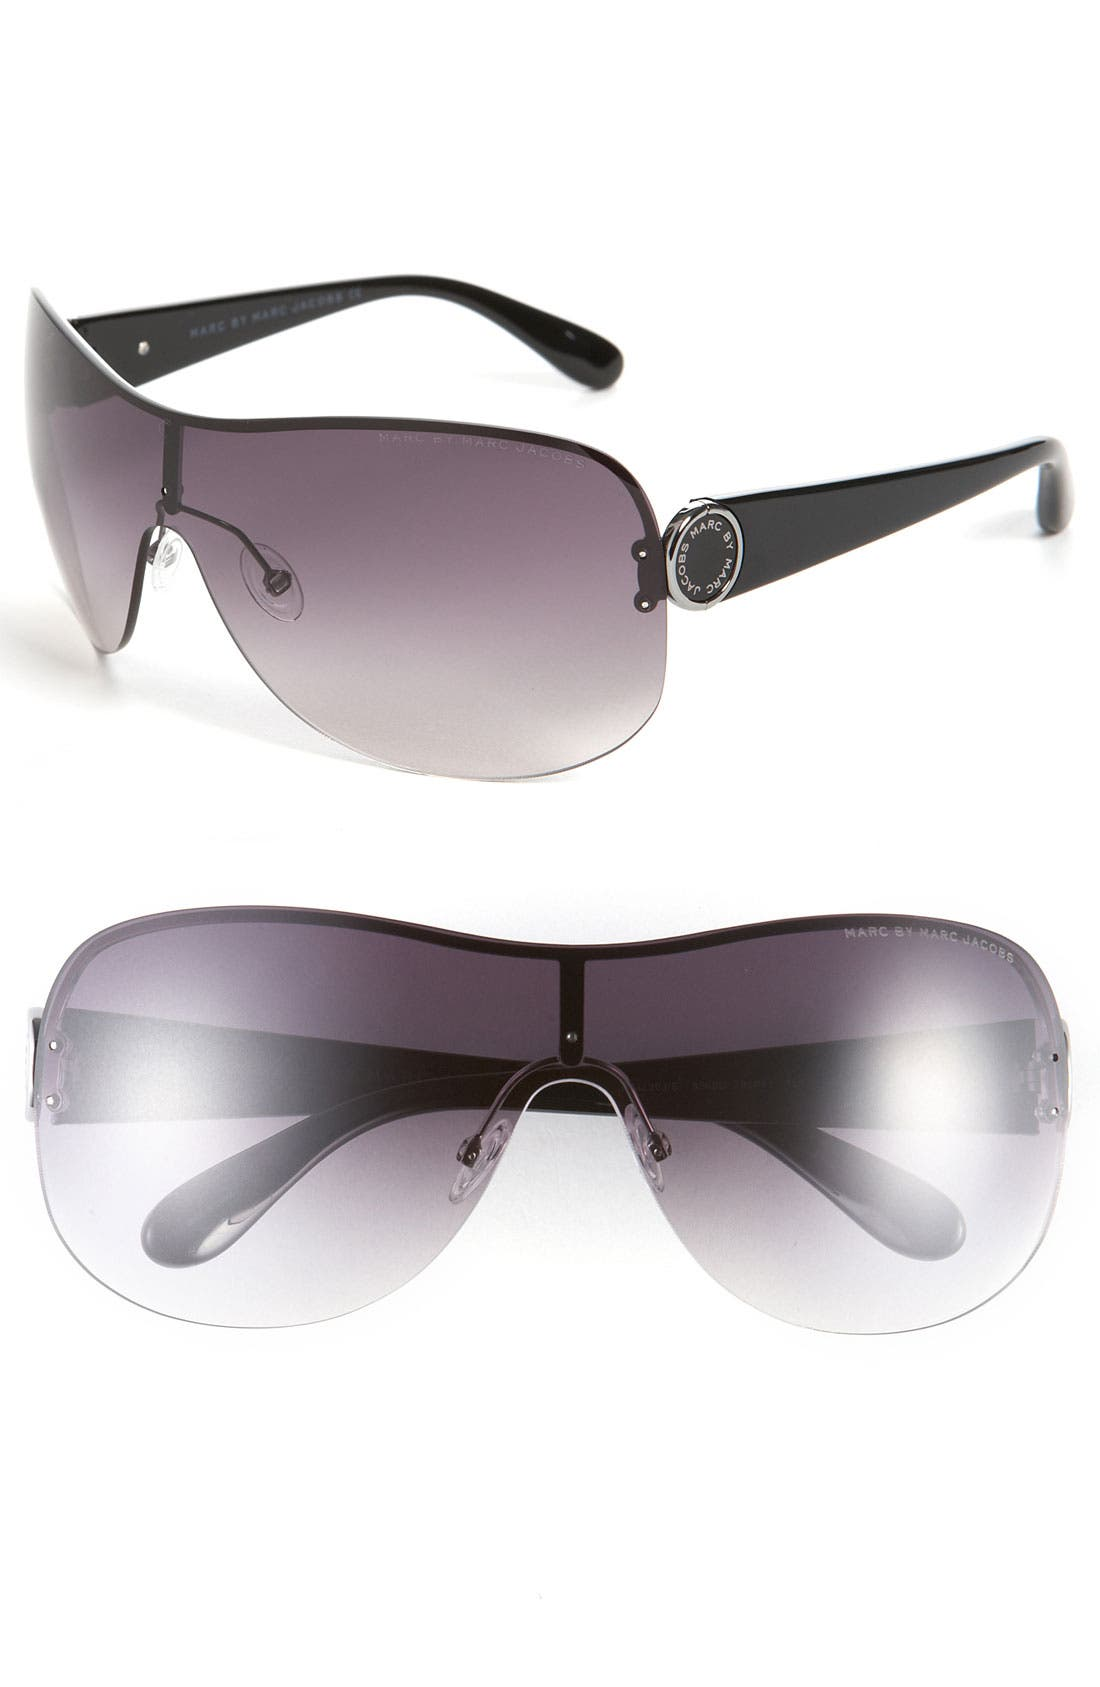 Main Image - MARC BY MARC JACOBS 99mm Rimless Shield Sunglasses